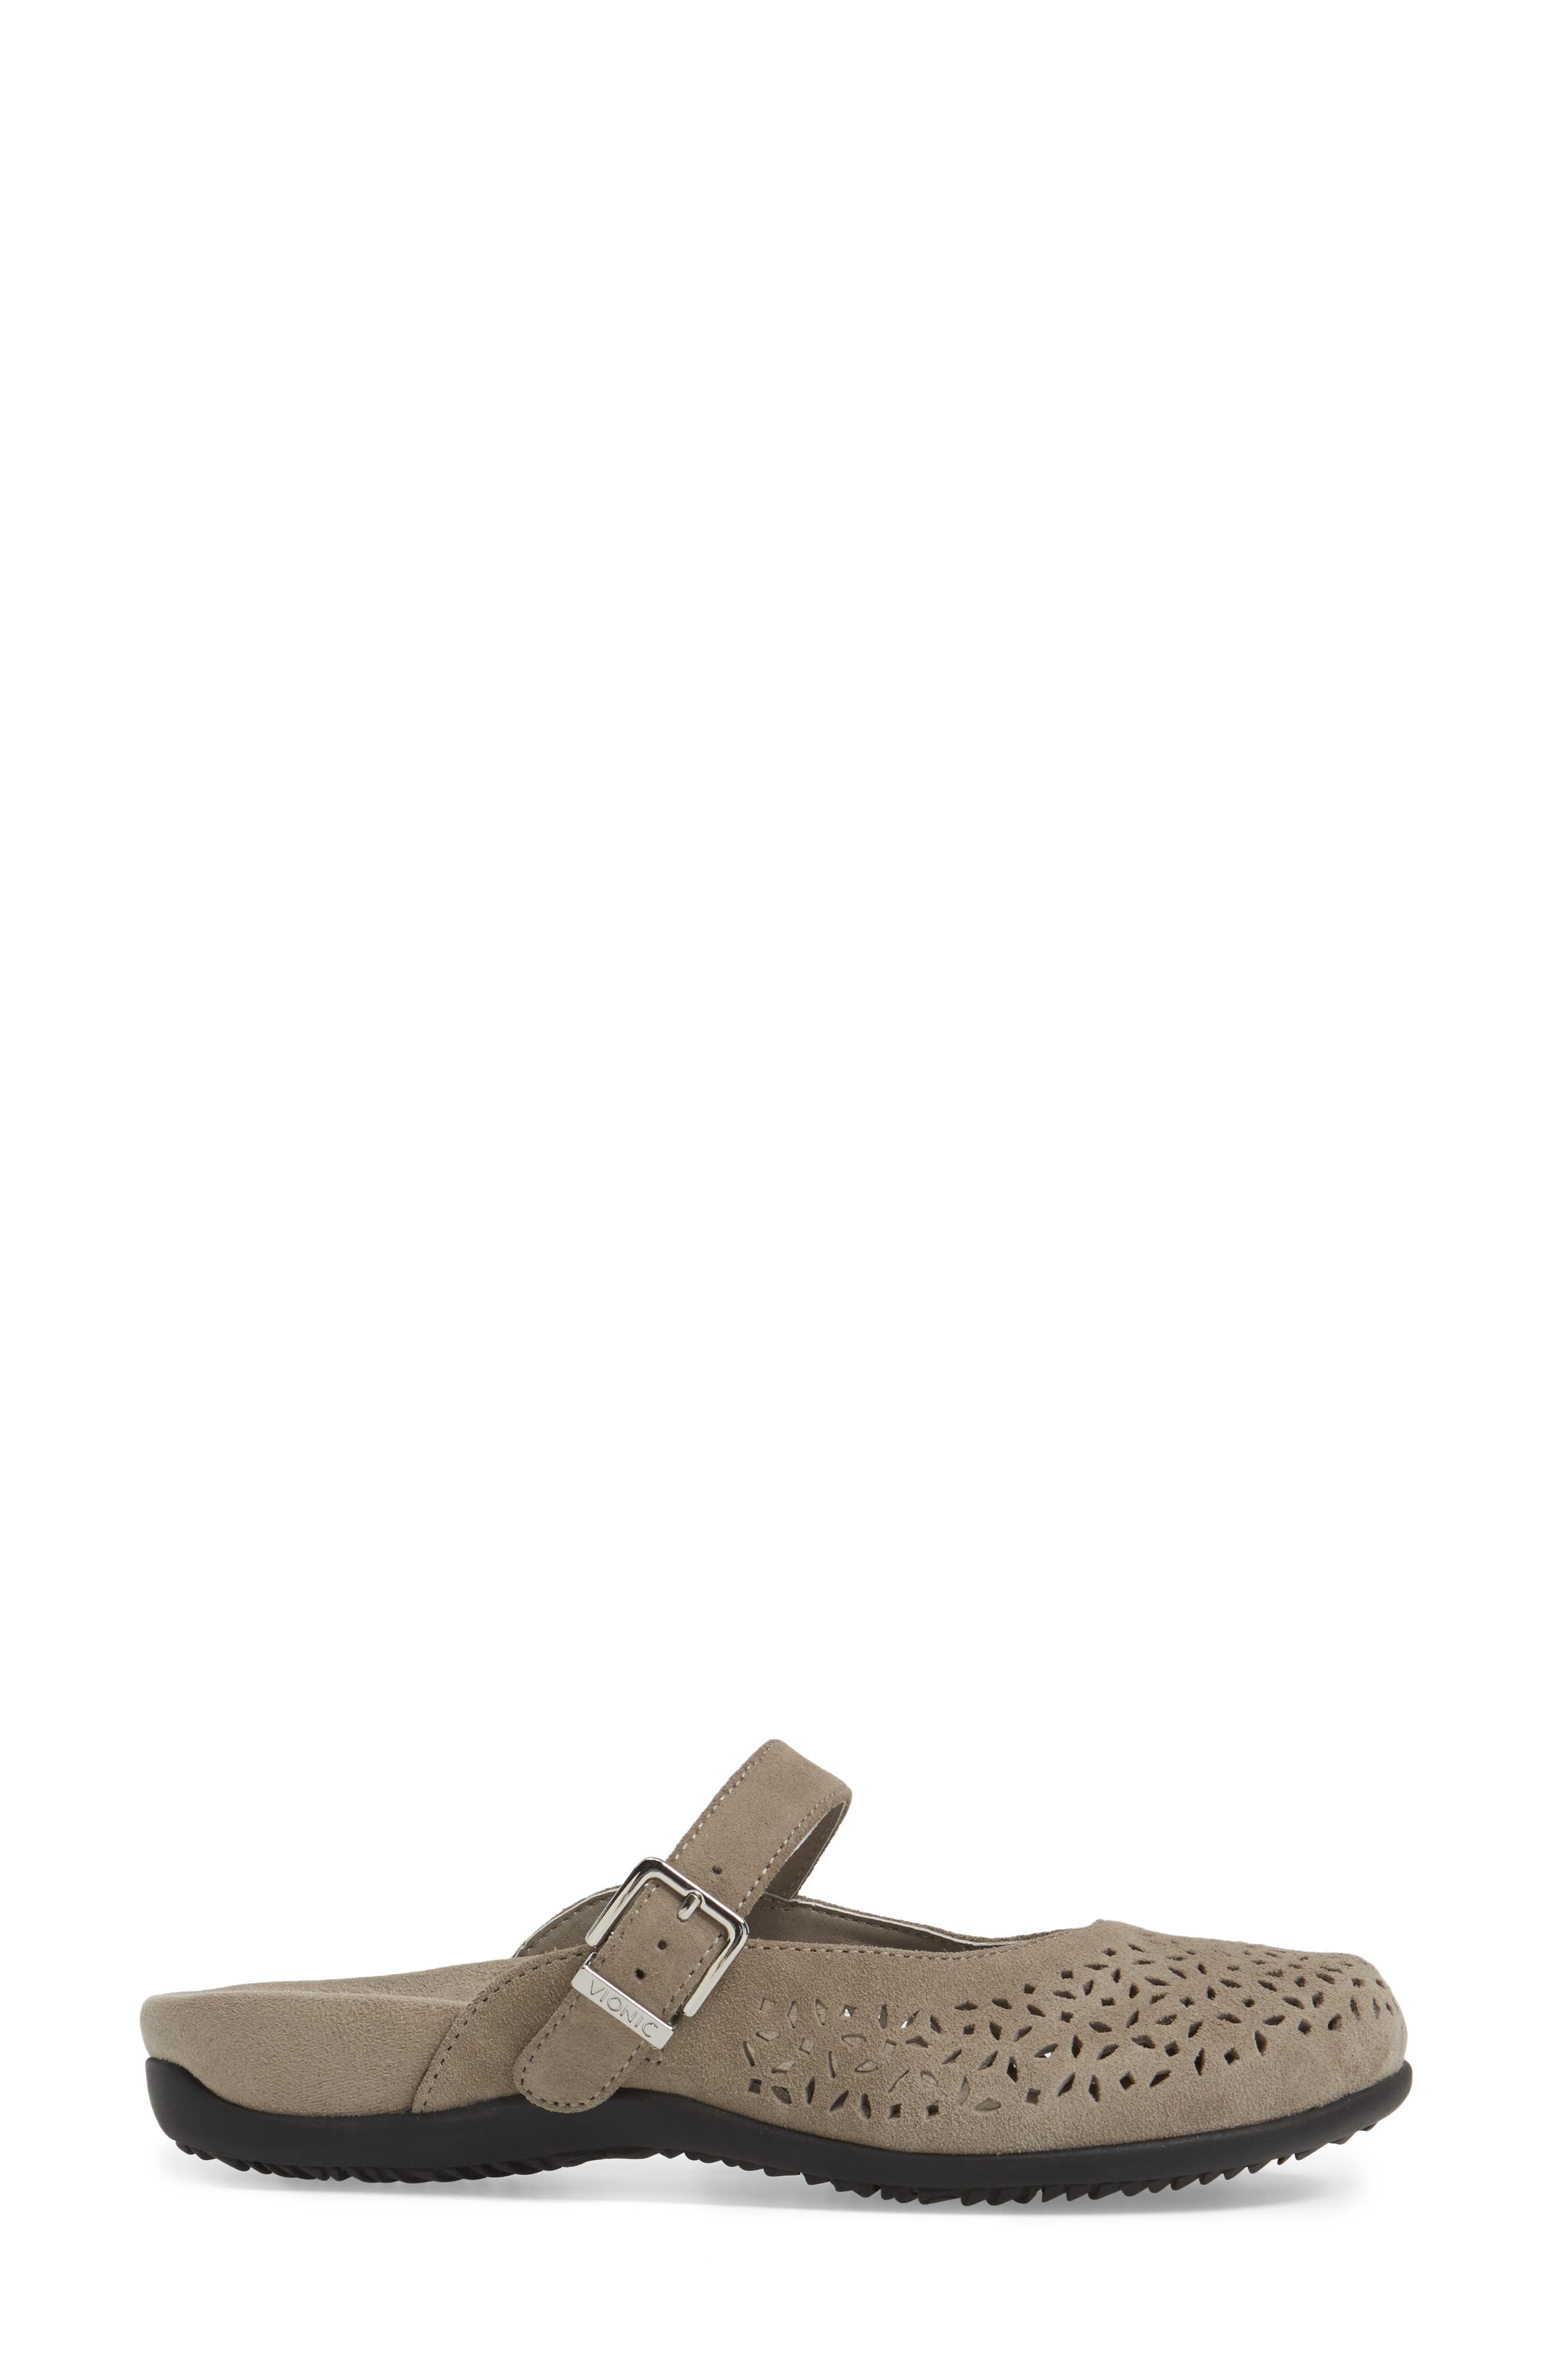 Rest Lidia Perforated Mary Jane Mule,                             Alternate thumbnail 3, color,                             Grey Suede